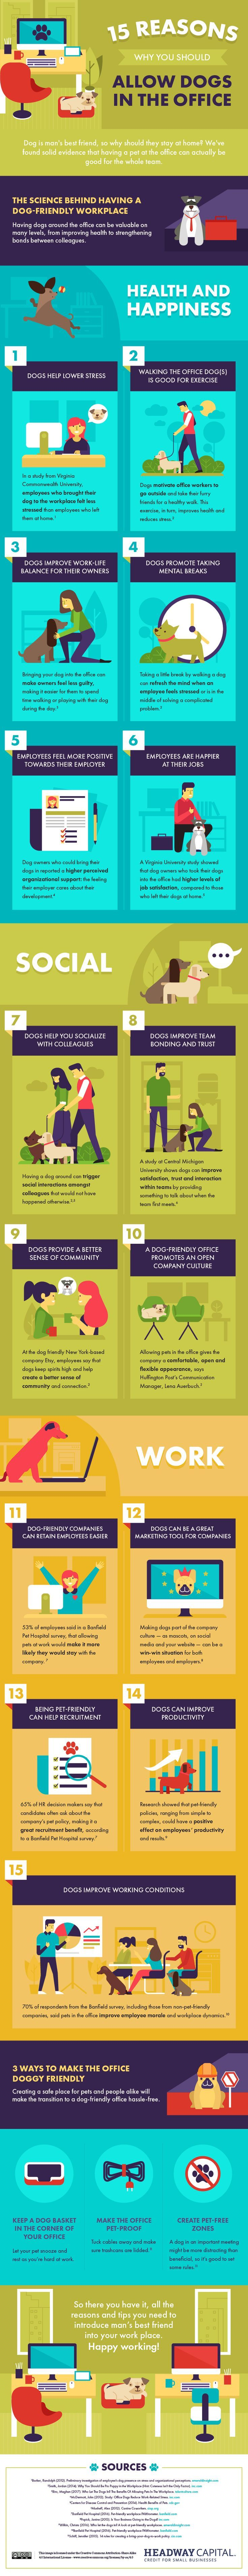 Yes -15 Reasons Why You Should Allow Dogs in the Office  #dogs #nostress